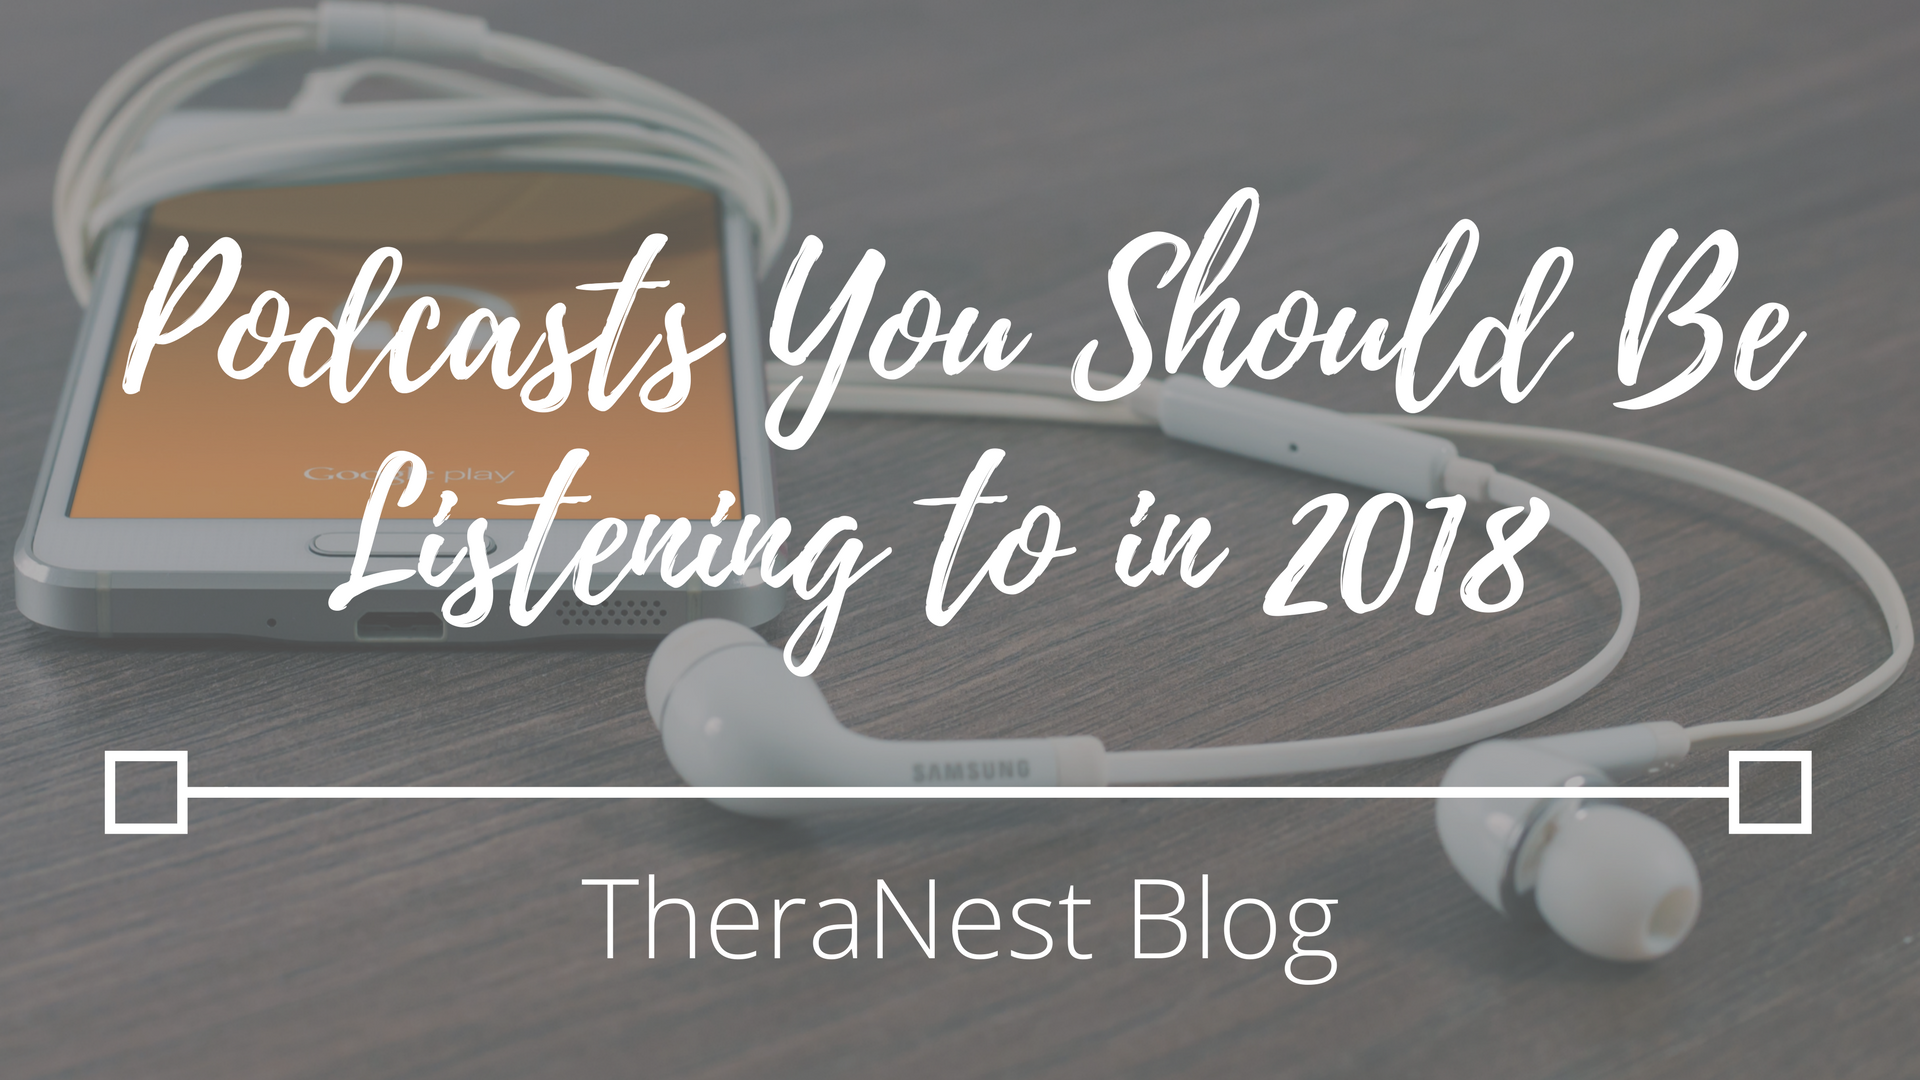 Podcasts You Should Be Listening to in 2018 - TheraNest Blog